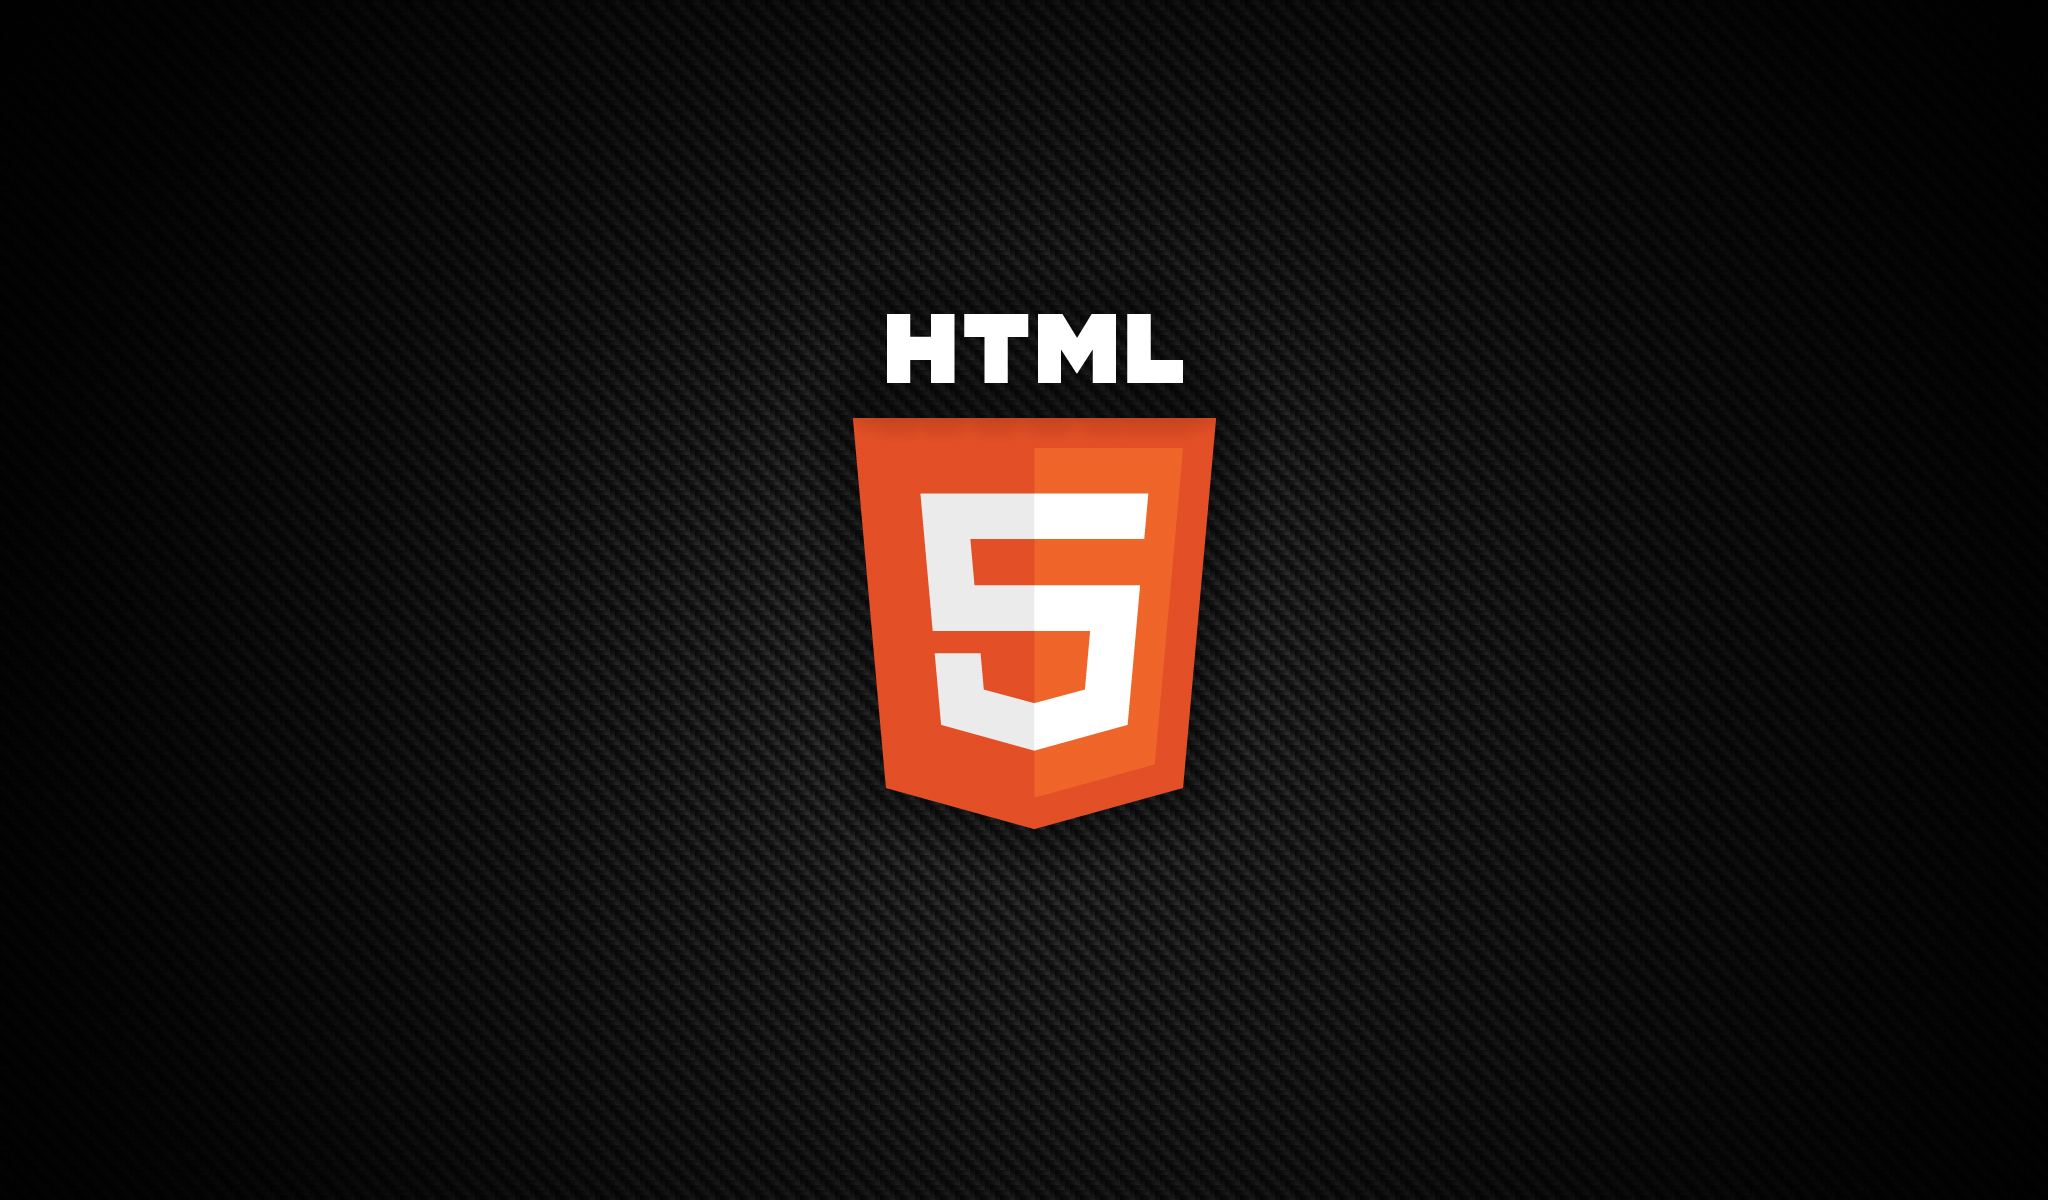 RIP Flash: Why HTML5 Will Finally Take Over Video and Web in 2014